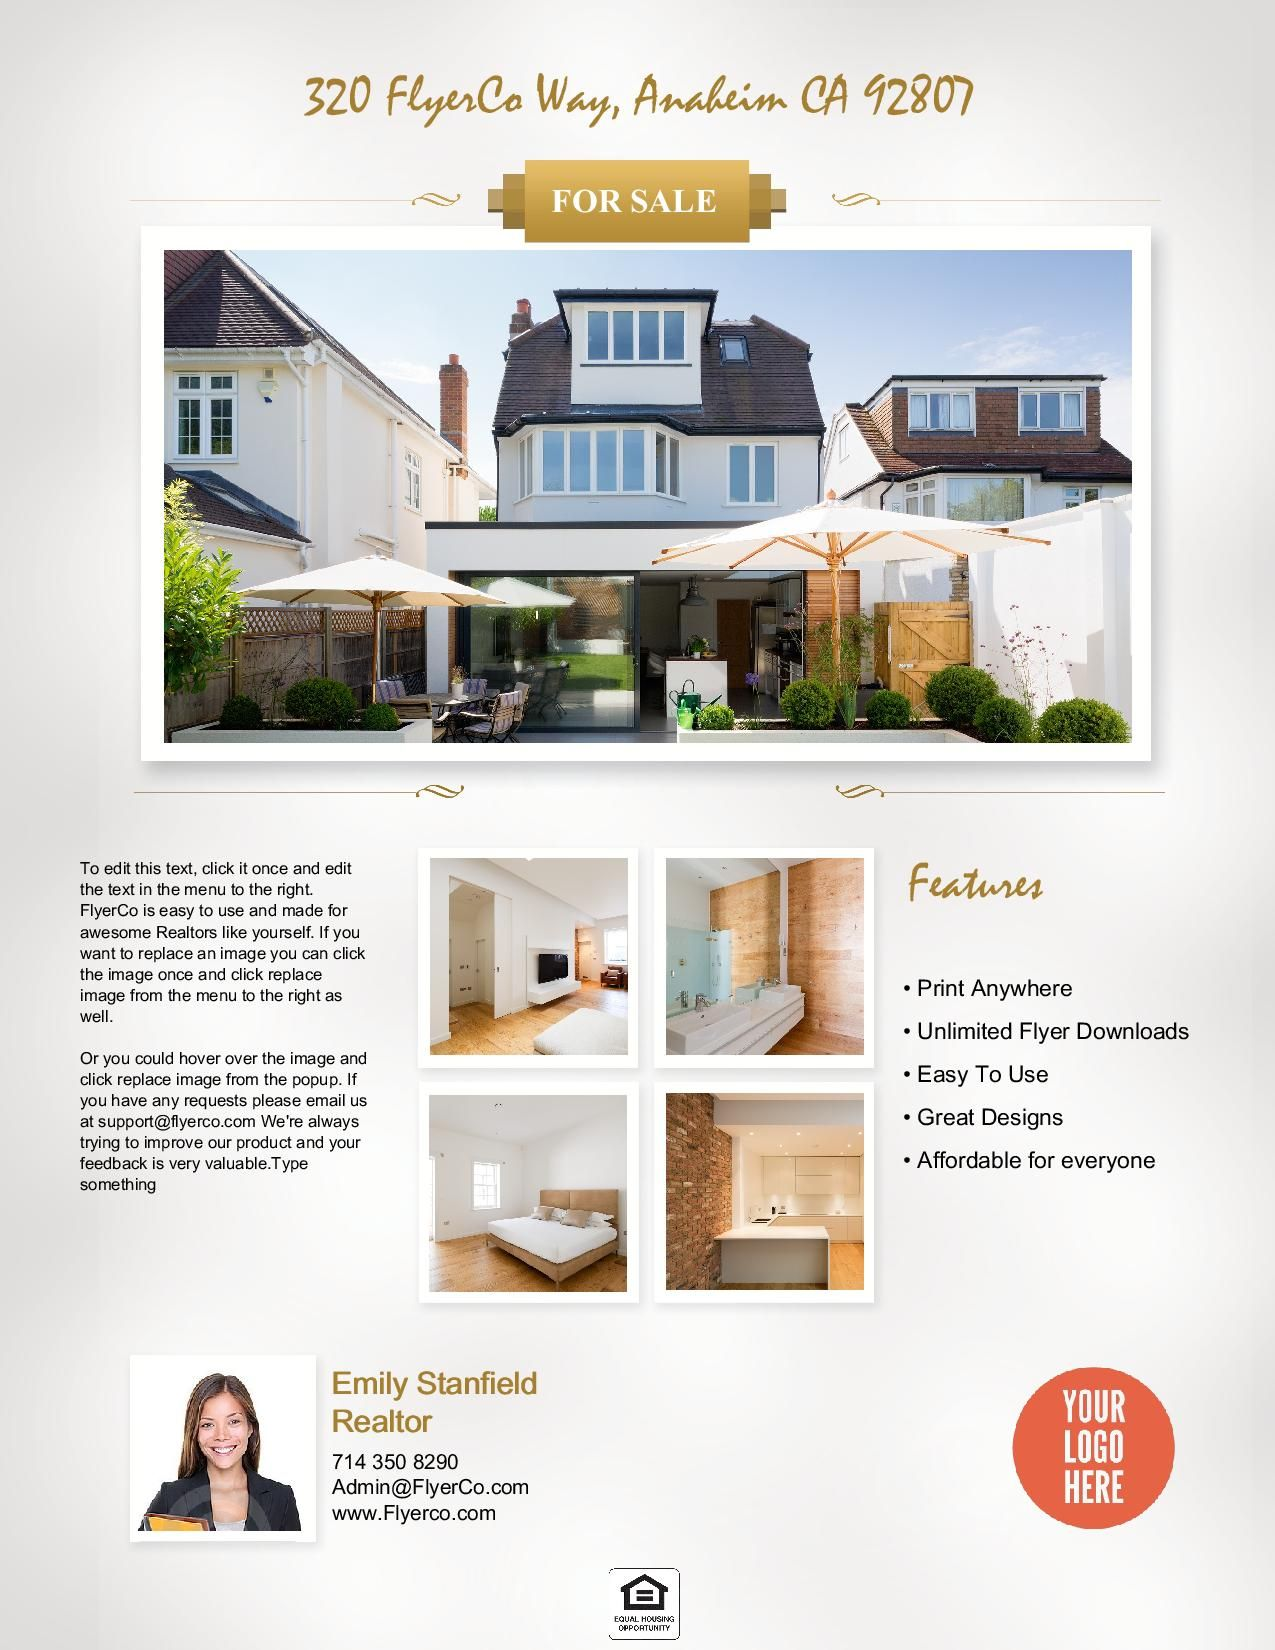 One Of The Real Estate Flyer Designs From Www Flyerco Com Realtor Real Estate Flyers Real Estate Real Estate Ads